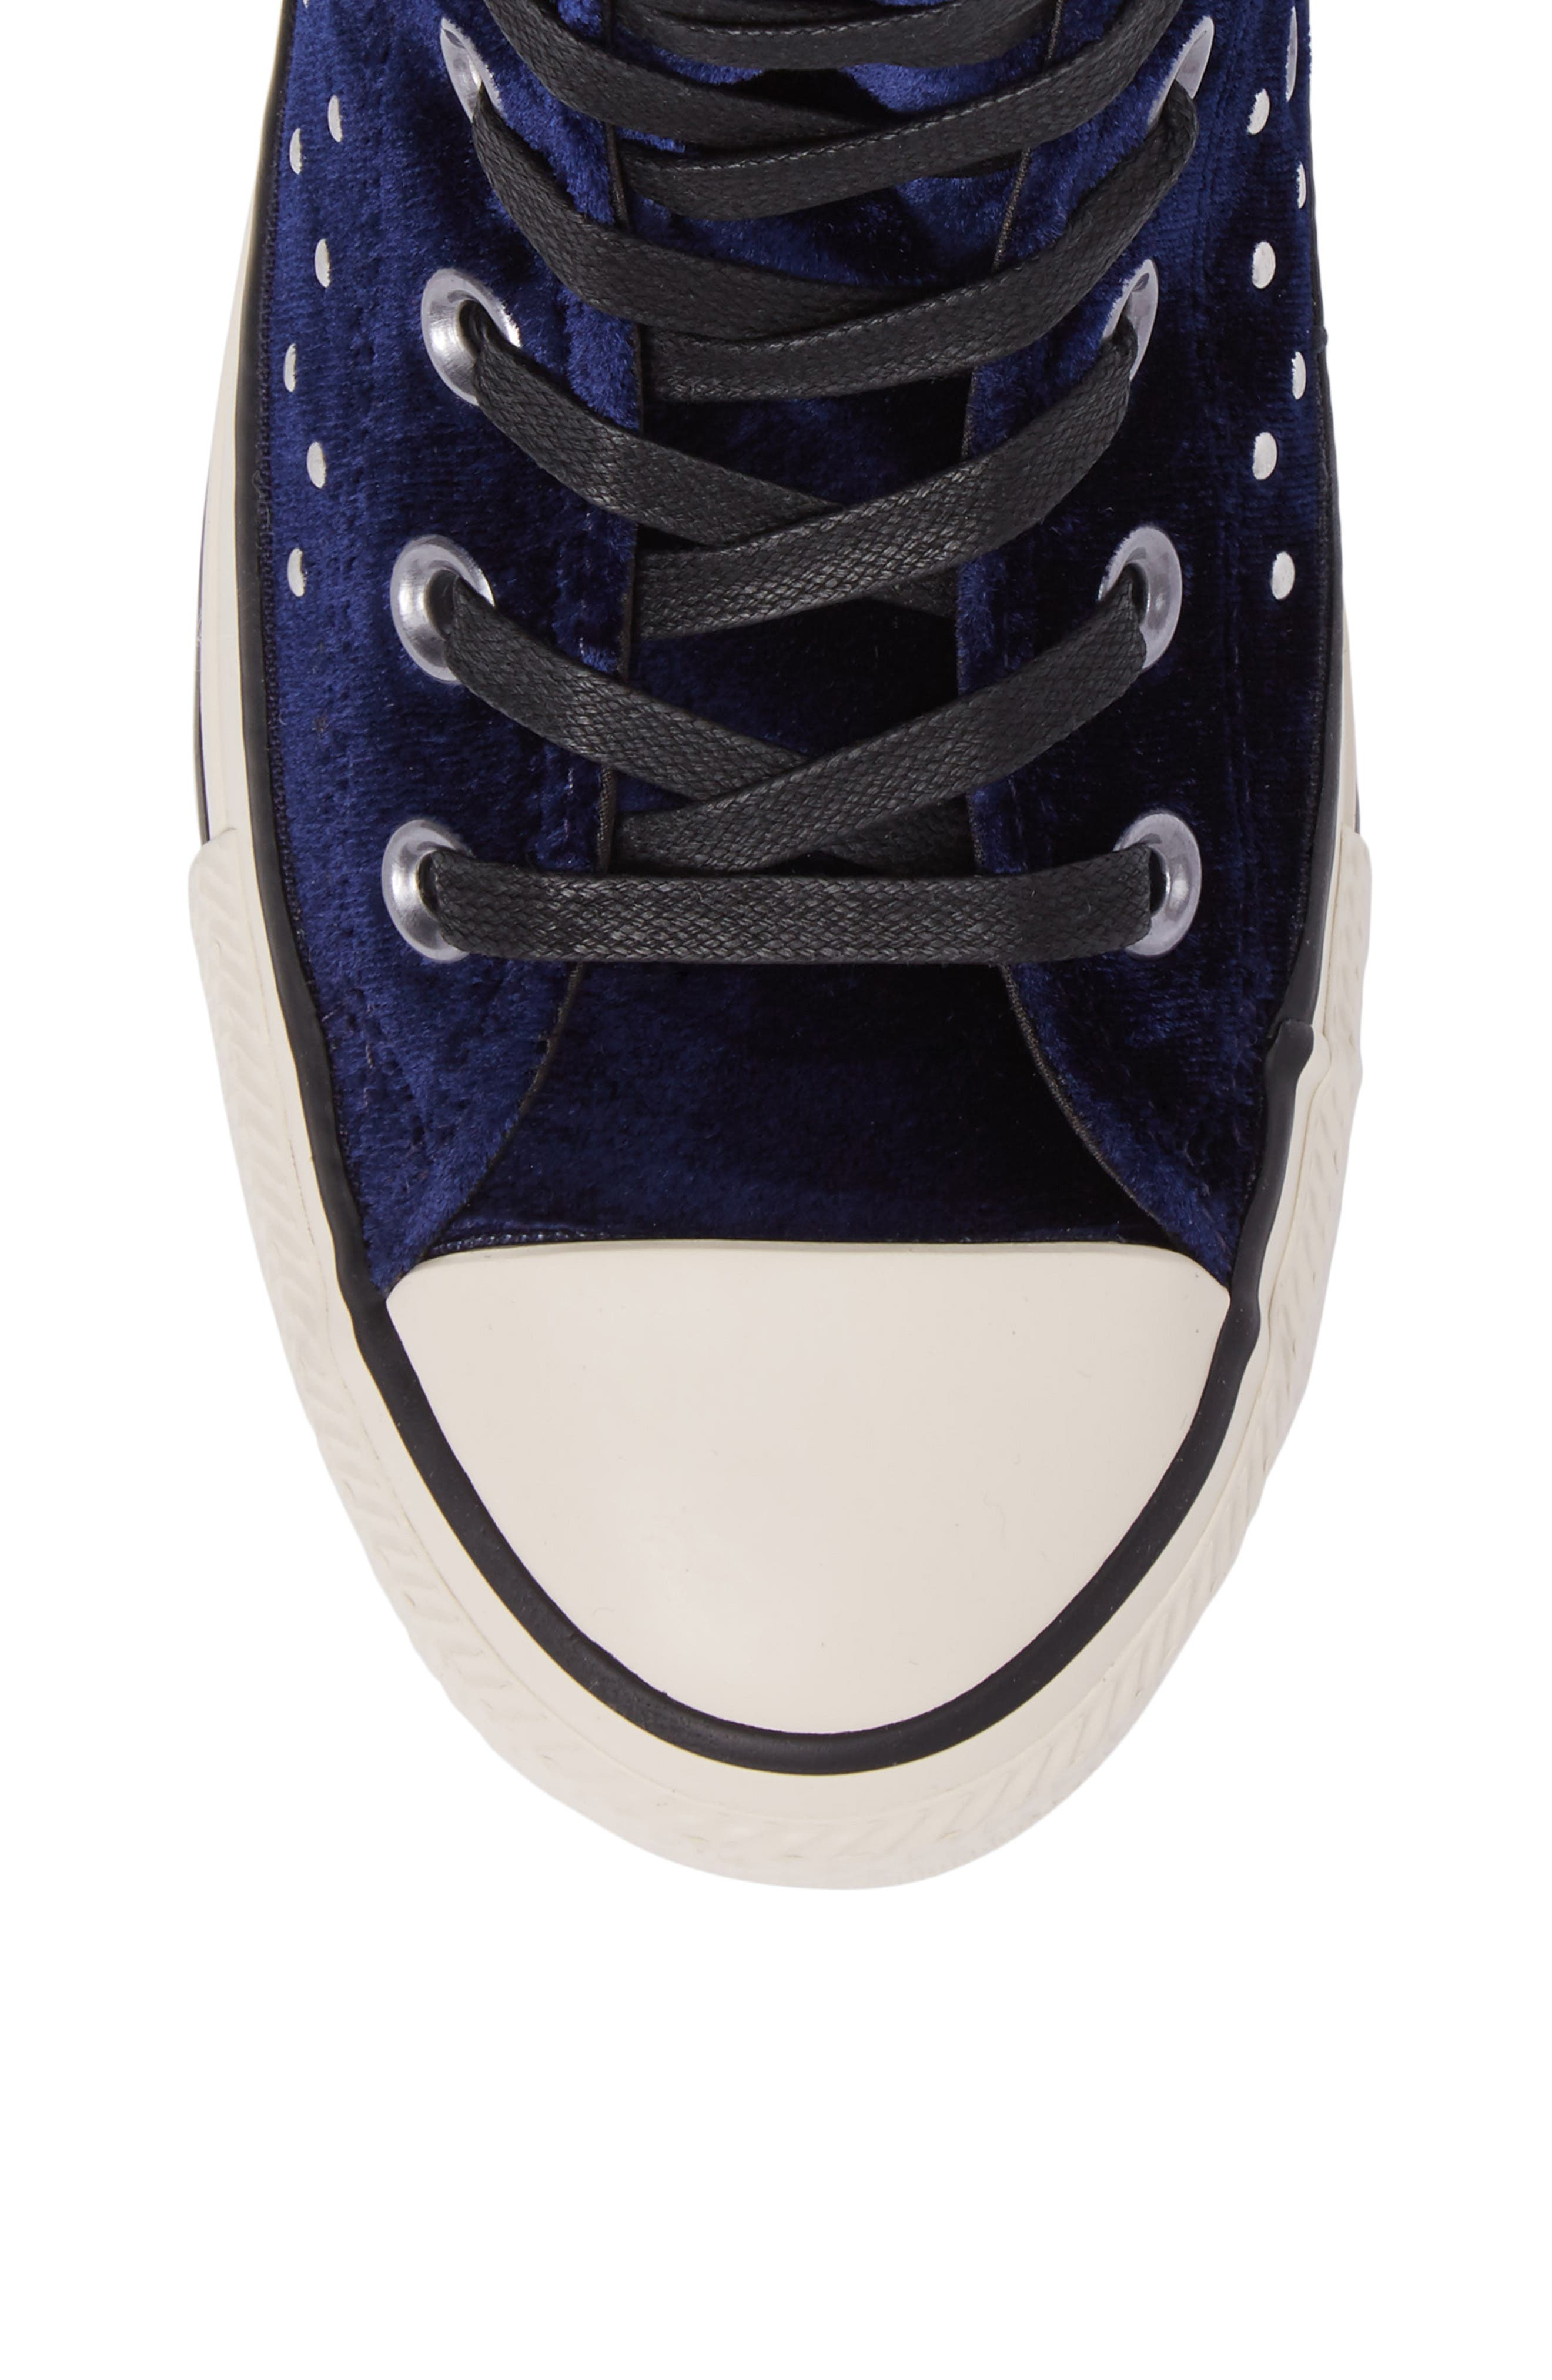 Chuck Taylor<sup>®</sup> All Star<sup>®</sup> Studded High Top Sneakers,                             Alternate thumbnail 14, color,